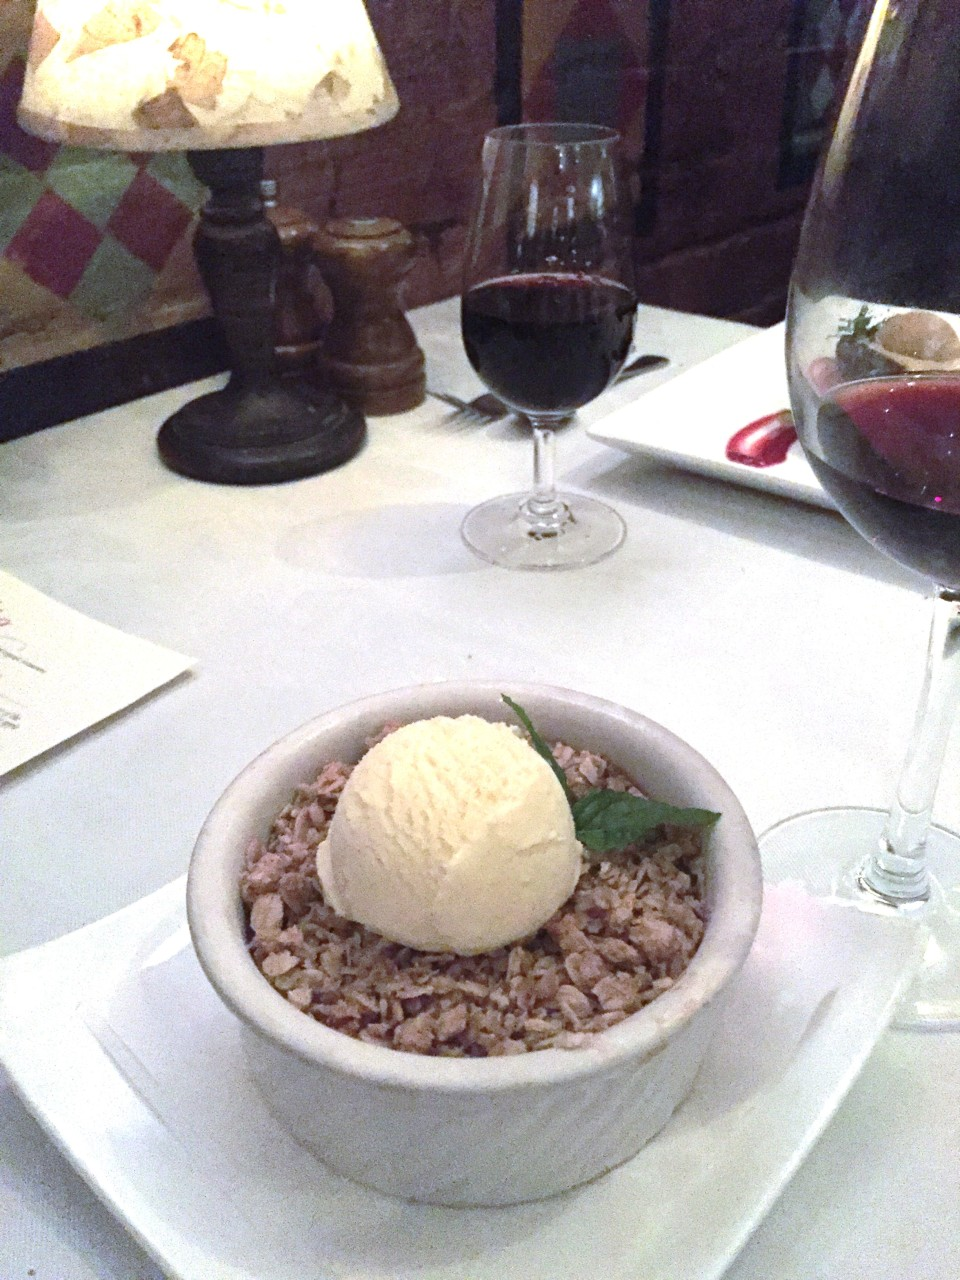 Rhubarb Strawberry Crisp with Vanilla Ice Cream